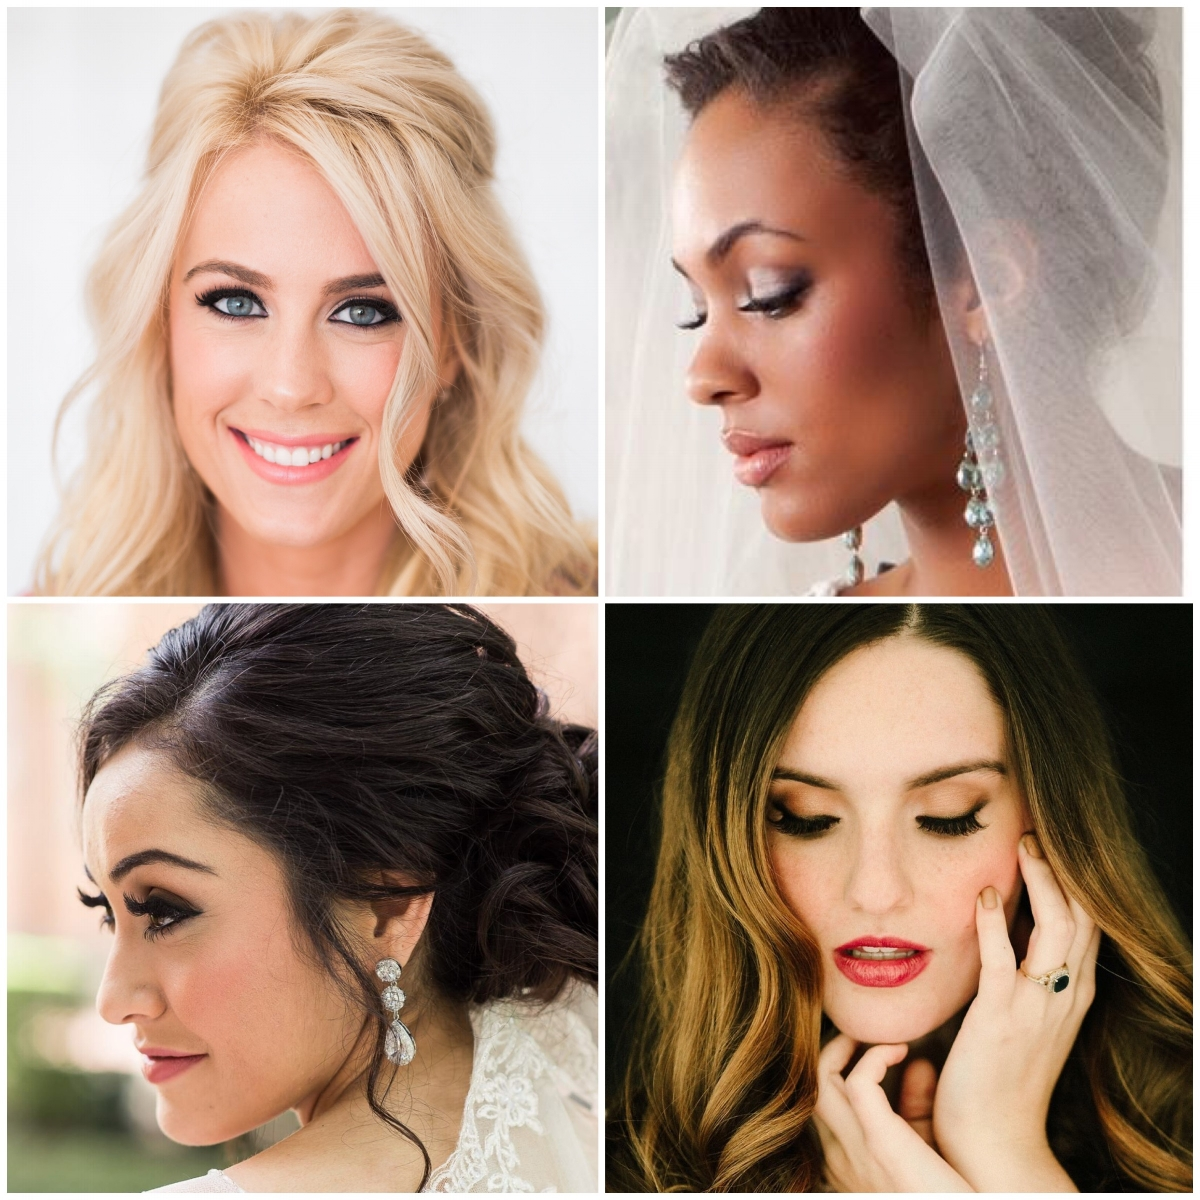 I would be honored to work with you on your big day! -